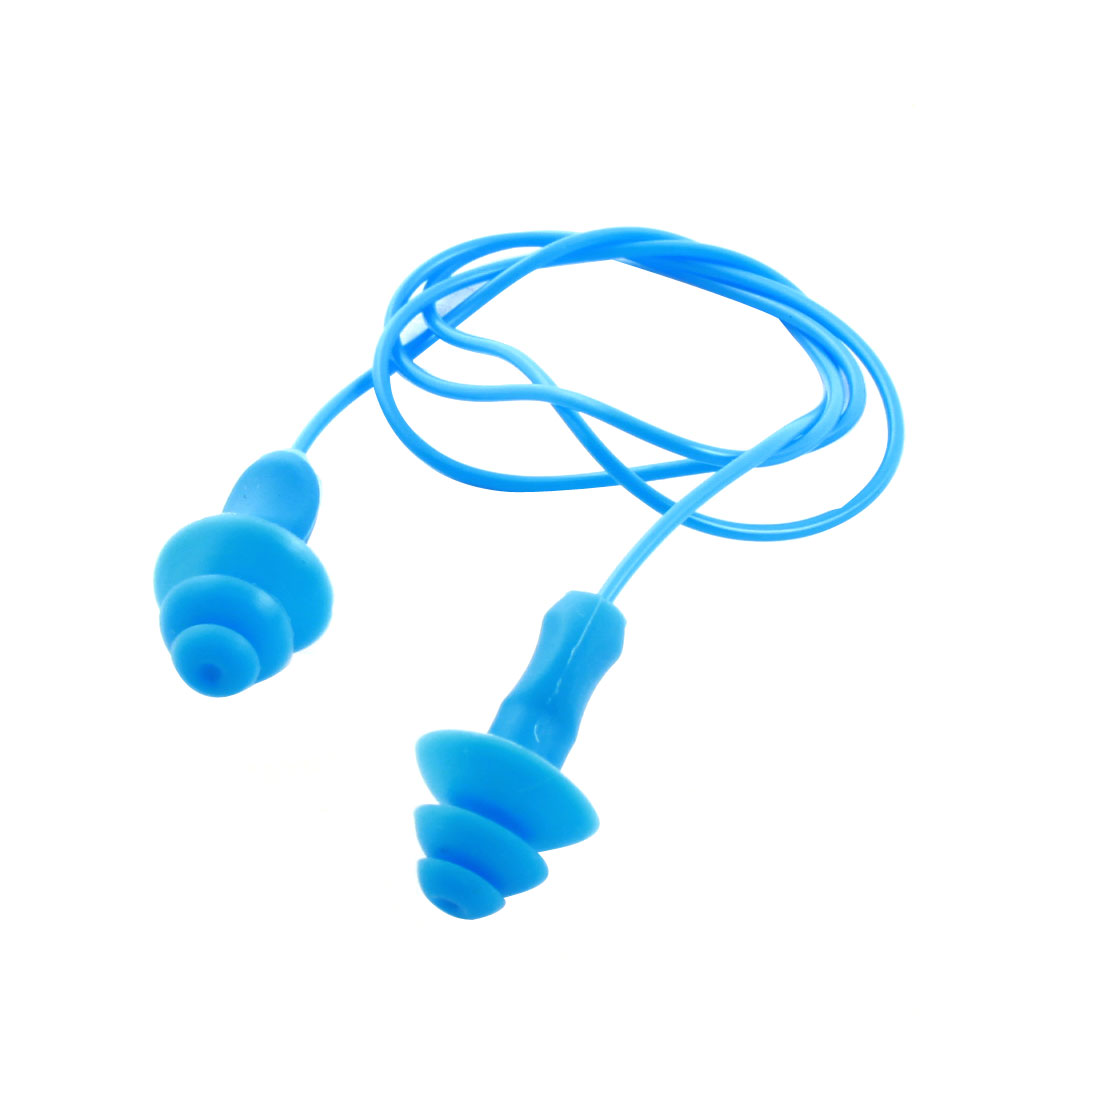 "Plastic 20.5"" String Swimming Flexible Soft Silicone Ear Plugs Earplug Blue"